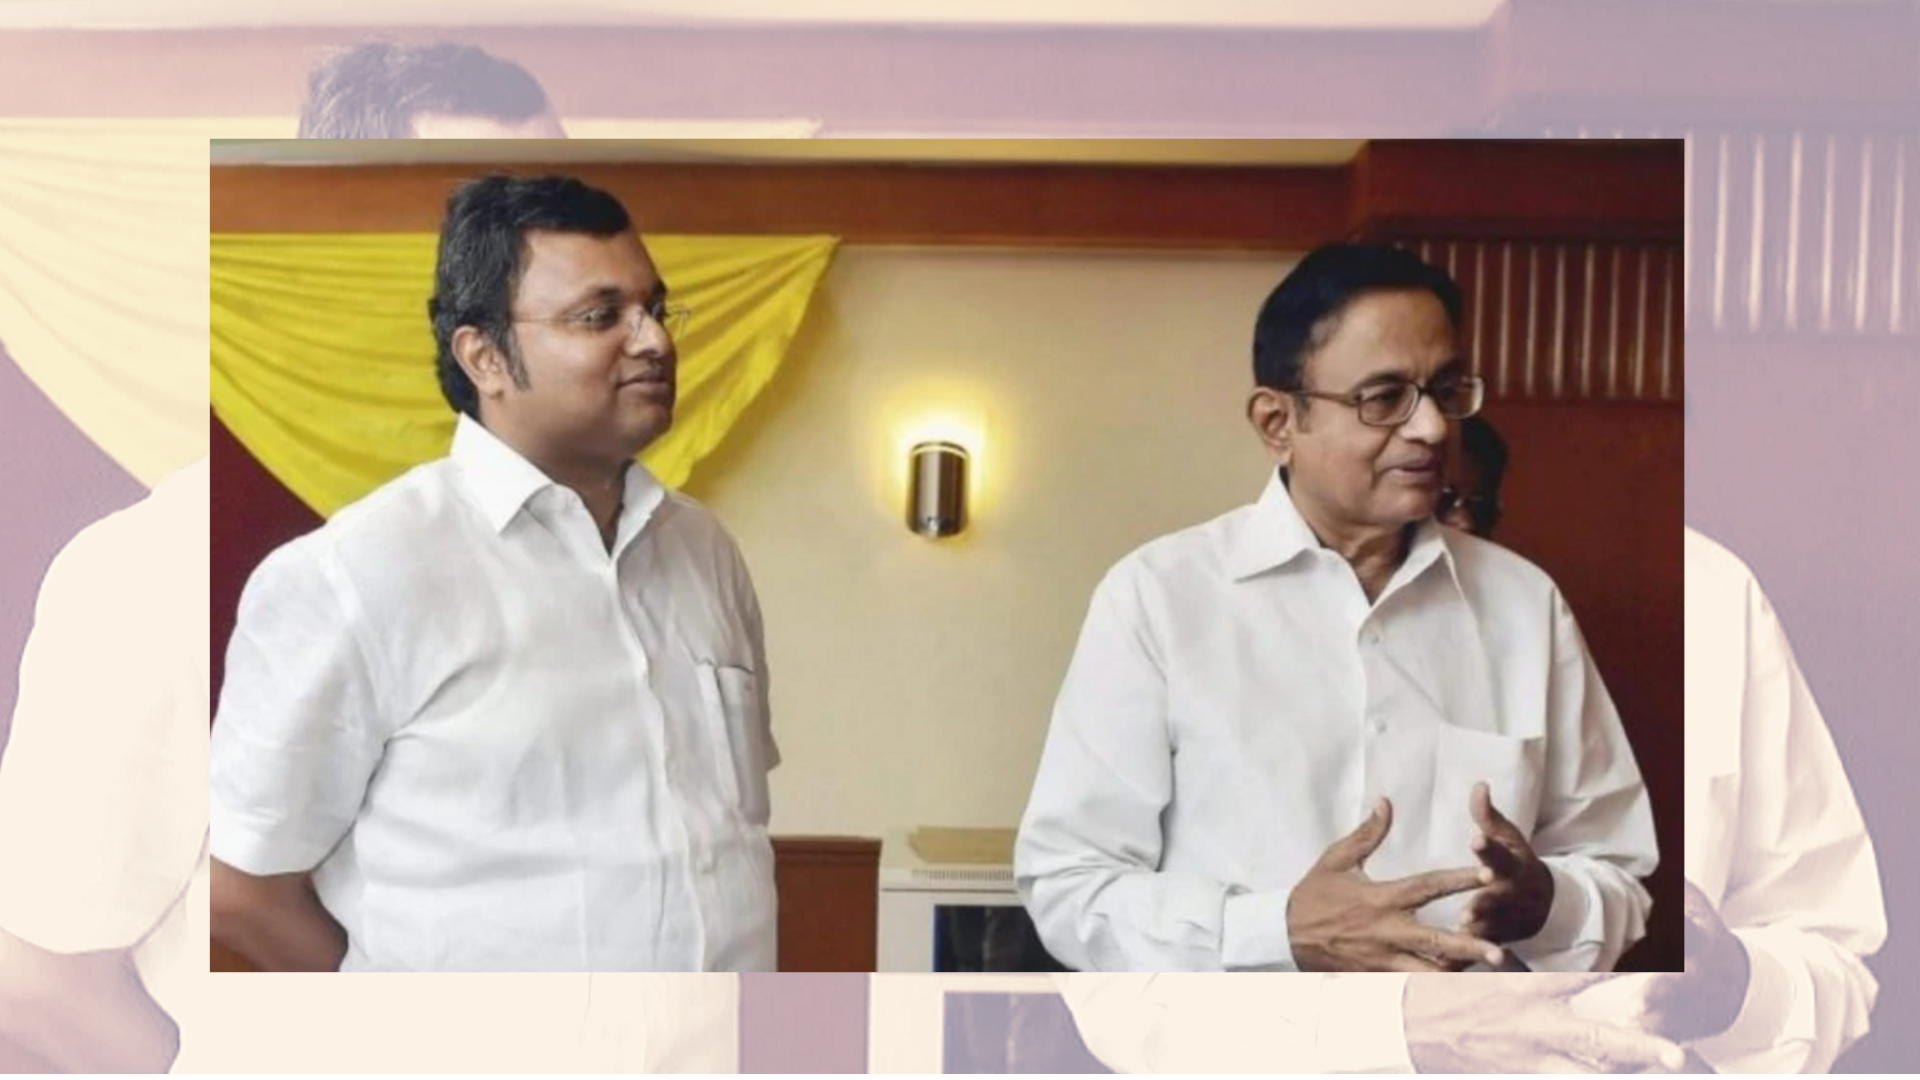 'Wish You Were Back Home': Son Writes on Chidambaram's 74th B'Day